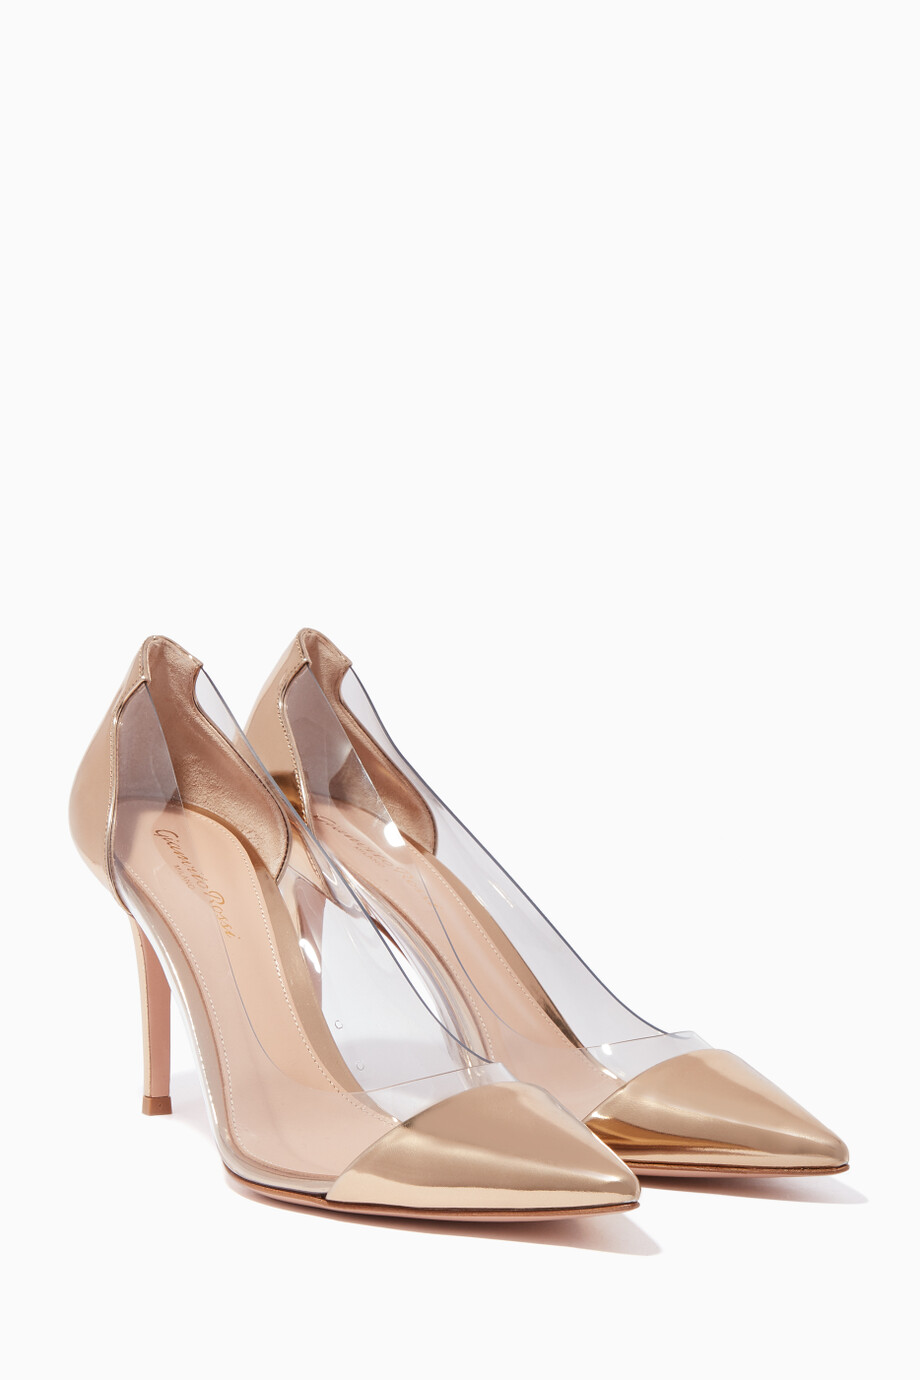 e256d2155d6 Shop Gianvito Rossi Gold Gold Patent Leather Plexi 85 Pumps for ...